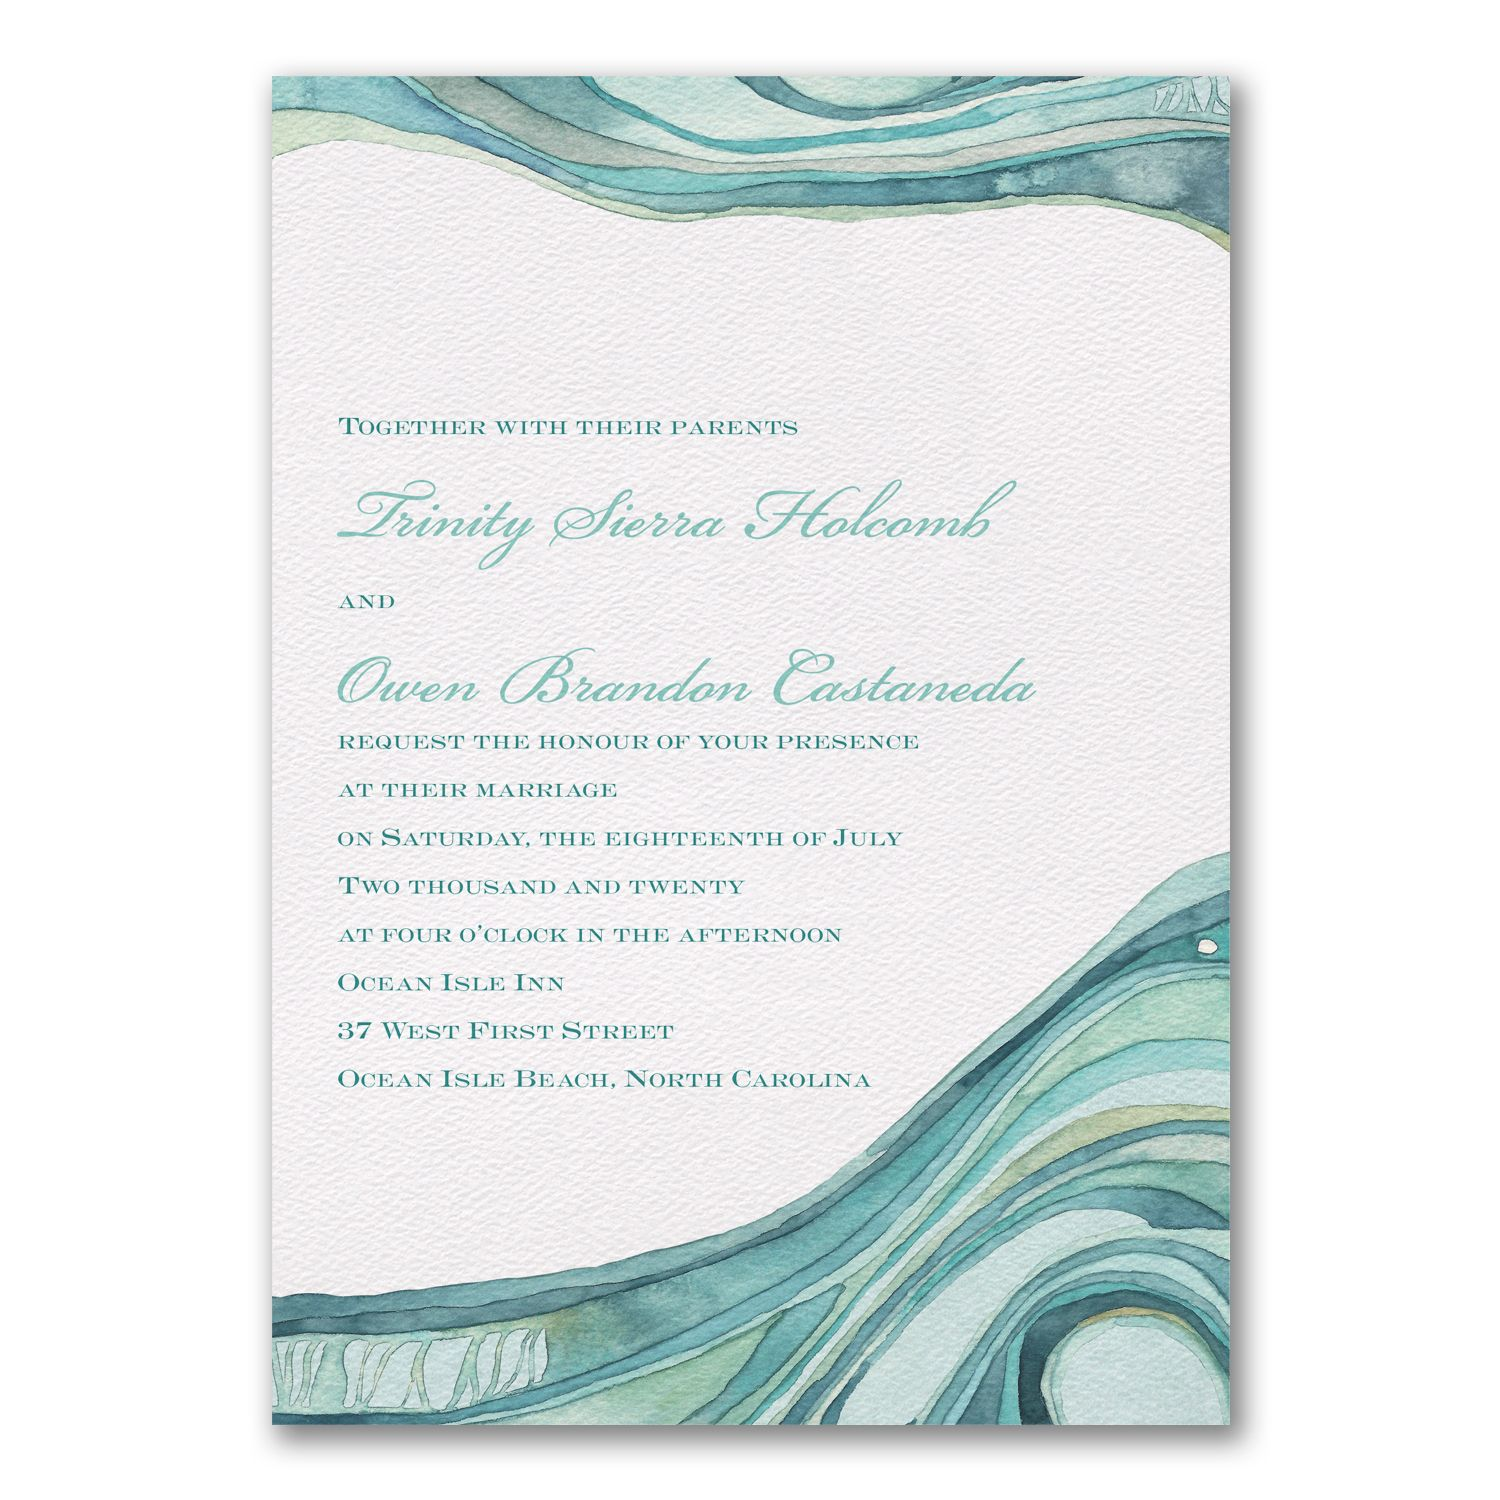 next day wedding invitations%0A Ocean  Beautiful ocean inspired Wedding Invitation designed by Designer  Shell Rummel for Carlson Craft